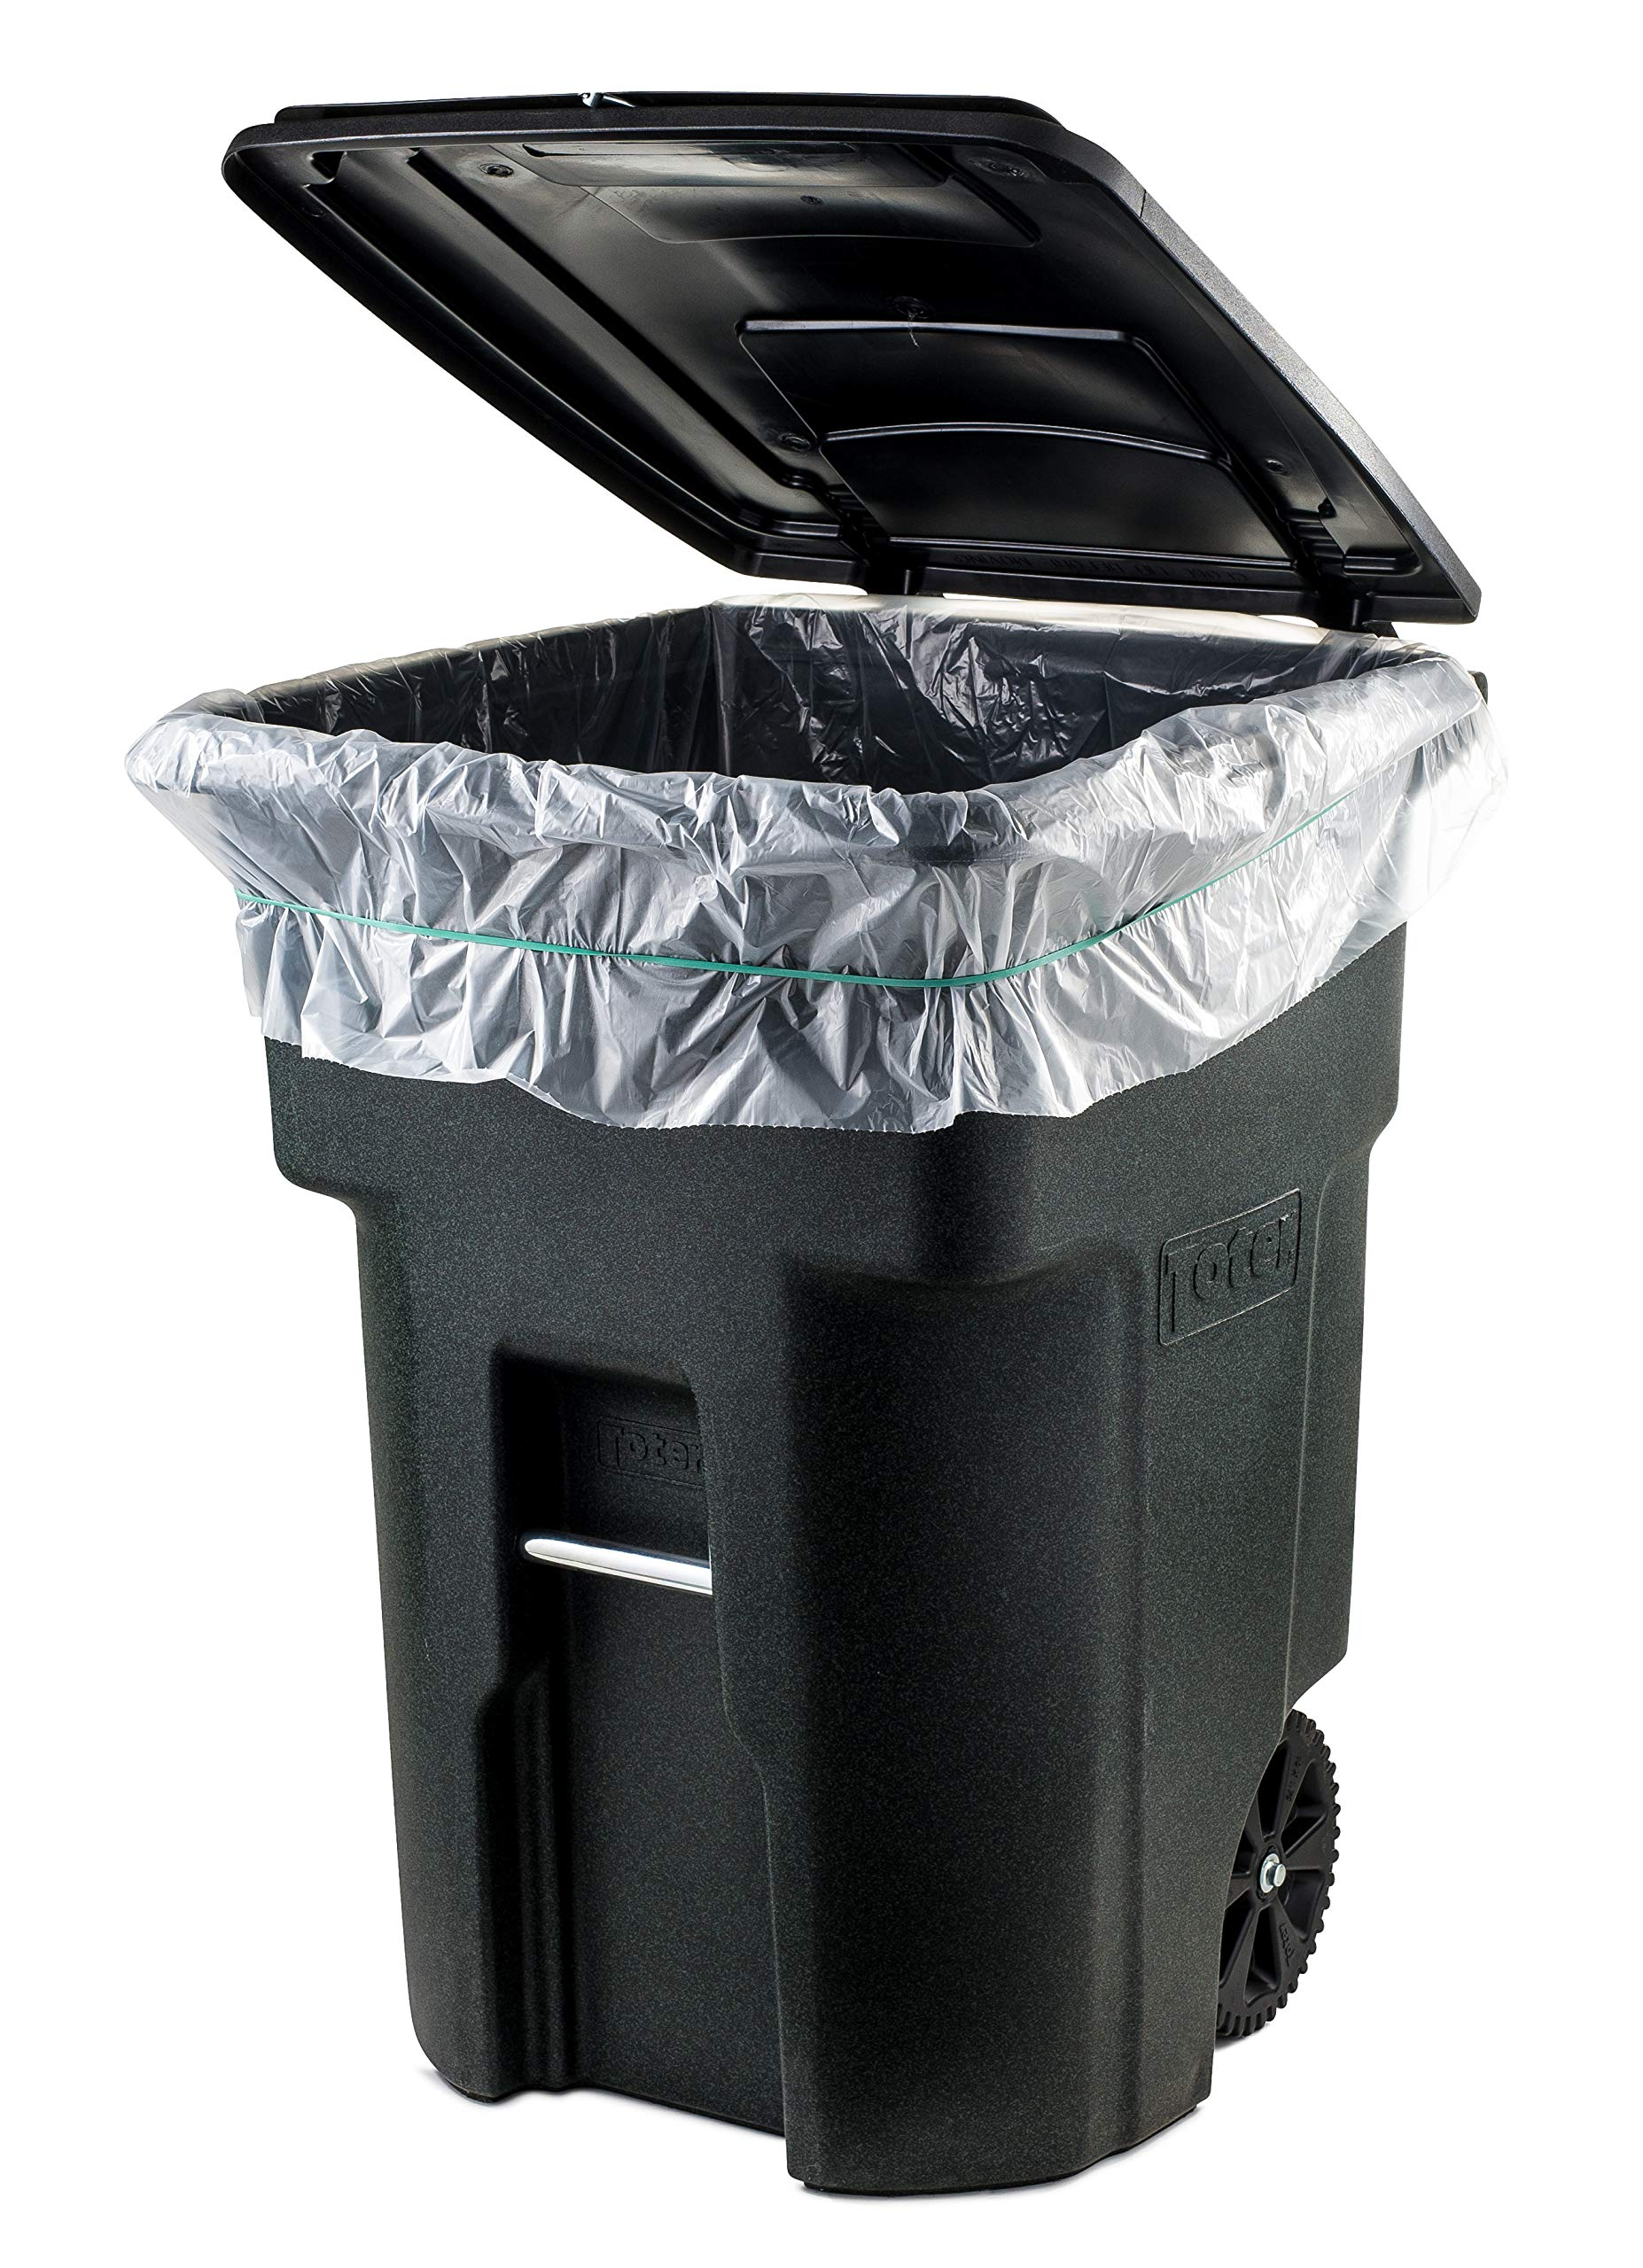 Plasticplace 64-65 Gallon Trash Can Liners for Toter │ 1.5 Mil │ Clear Heavy Duty Garbage Bags │ 50'' X 60'' (50Count) by Plasticplace